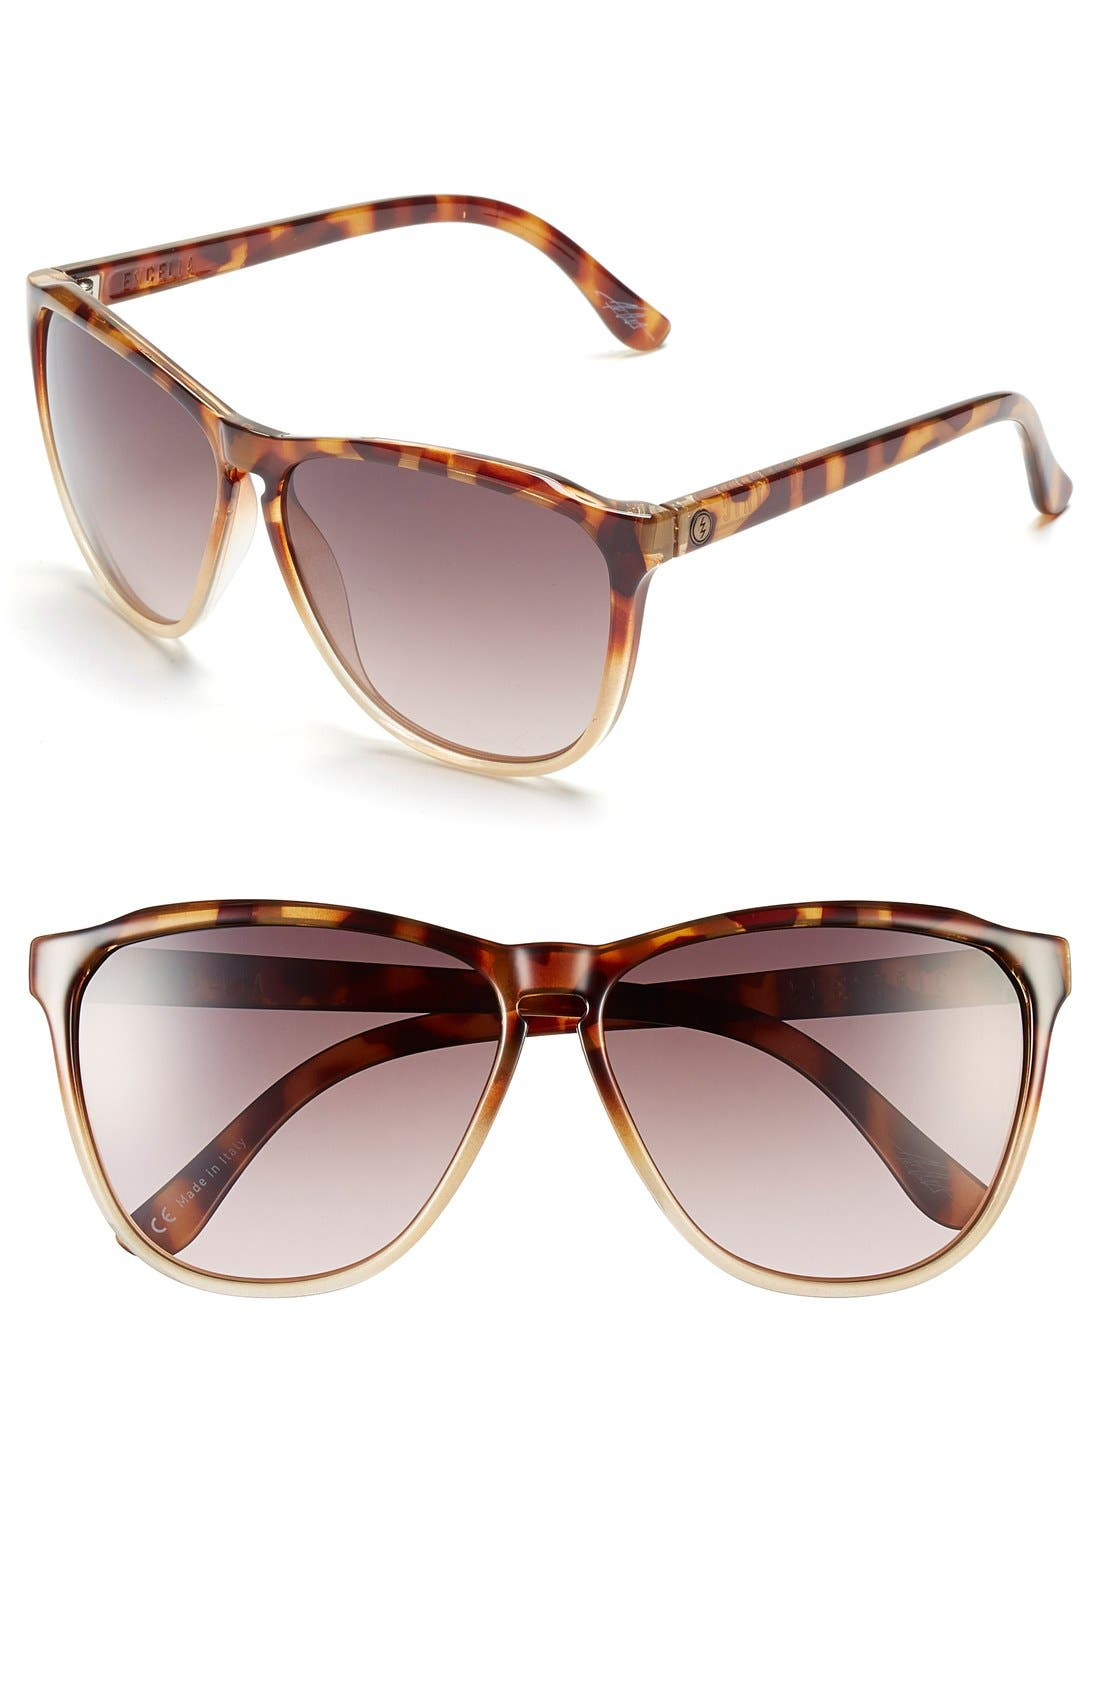 ELECTRIC Encelia 66mm Retro Sunglasses